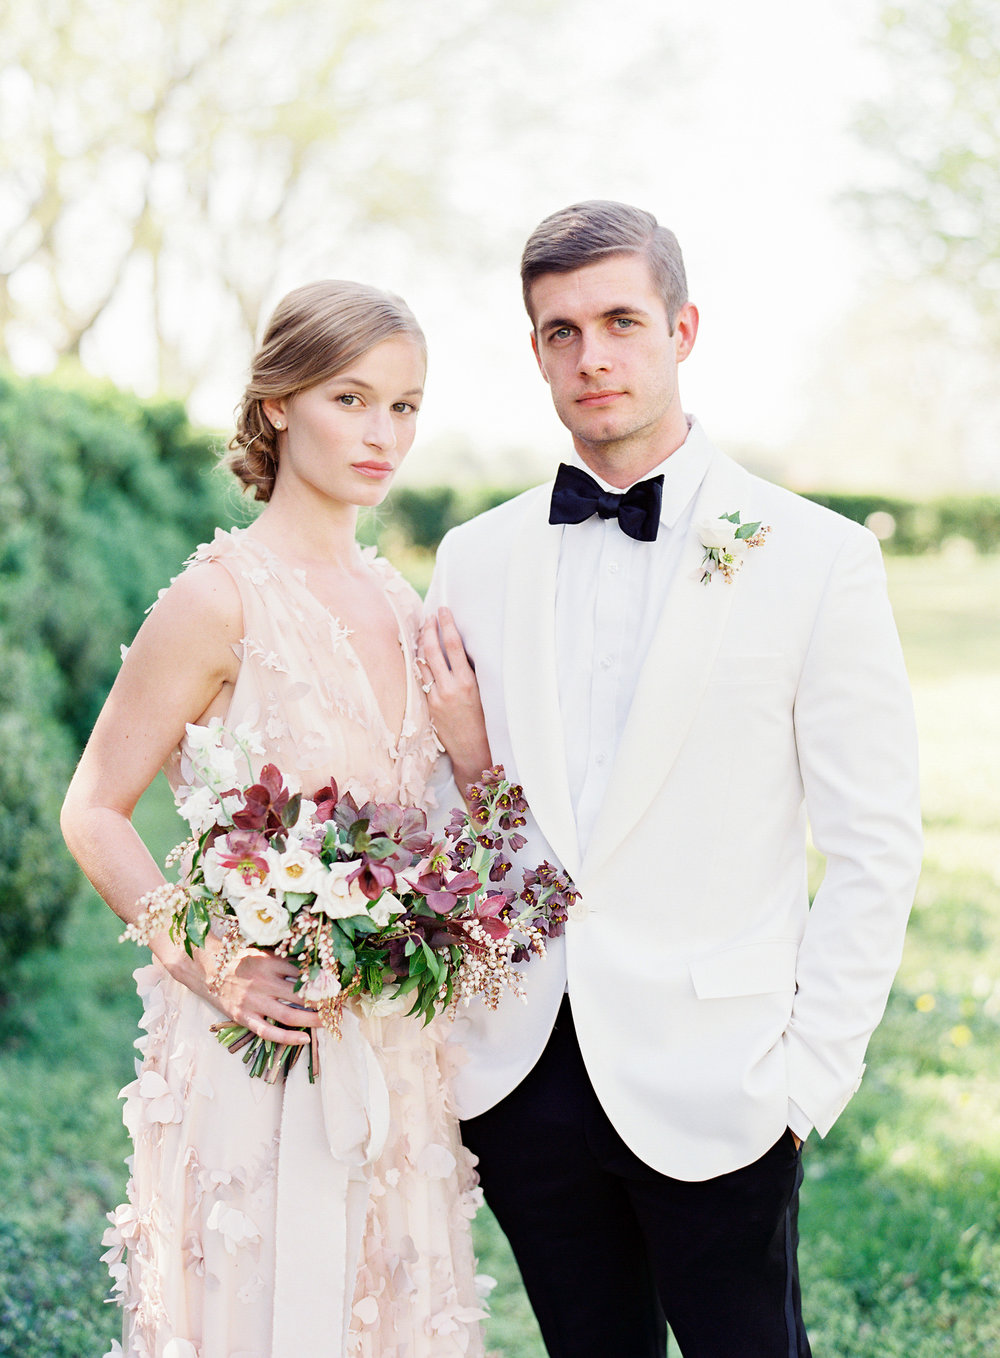 Virginia blush spring wedding at North Point Plantation with Rachel May Photography and East Made Event Company featured on OnceWed-0181.jpg